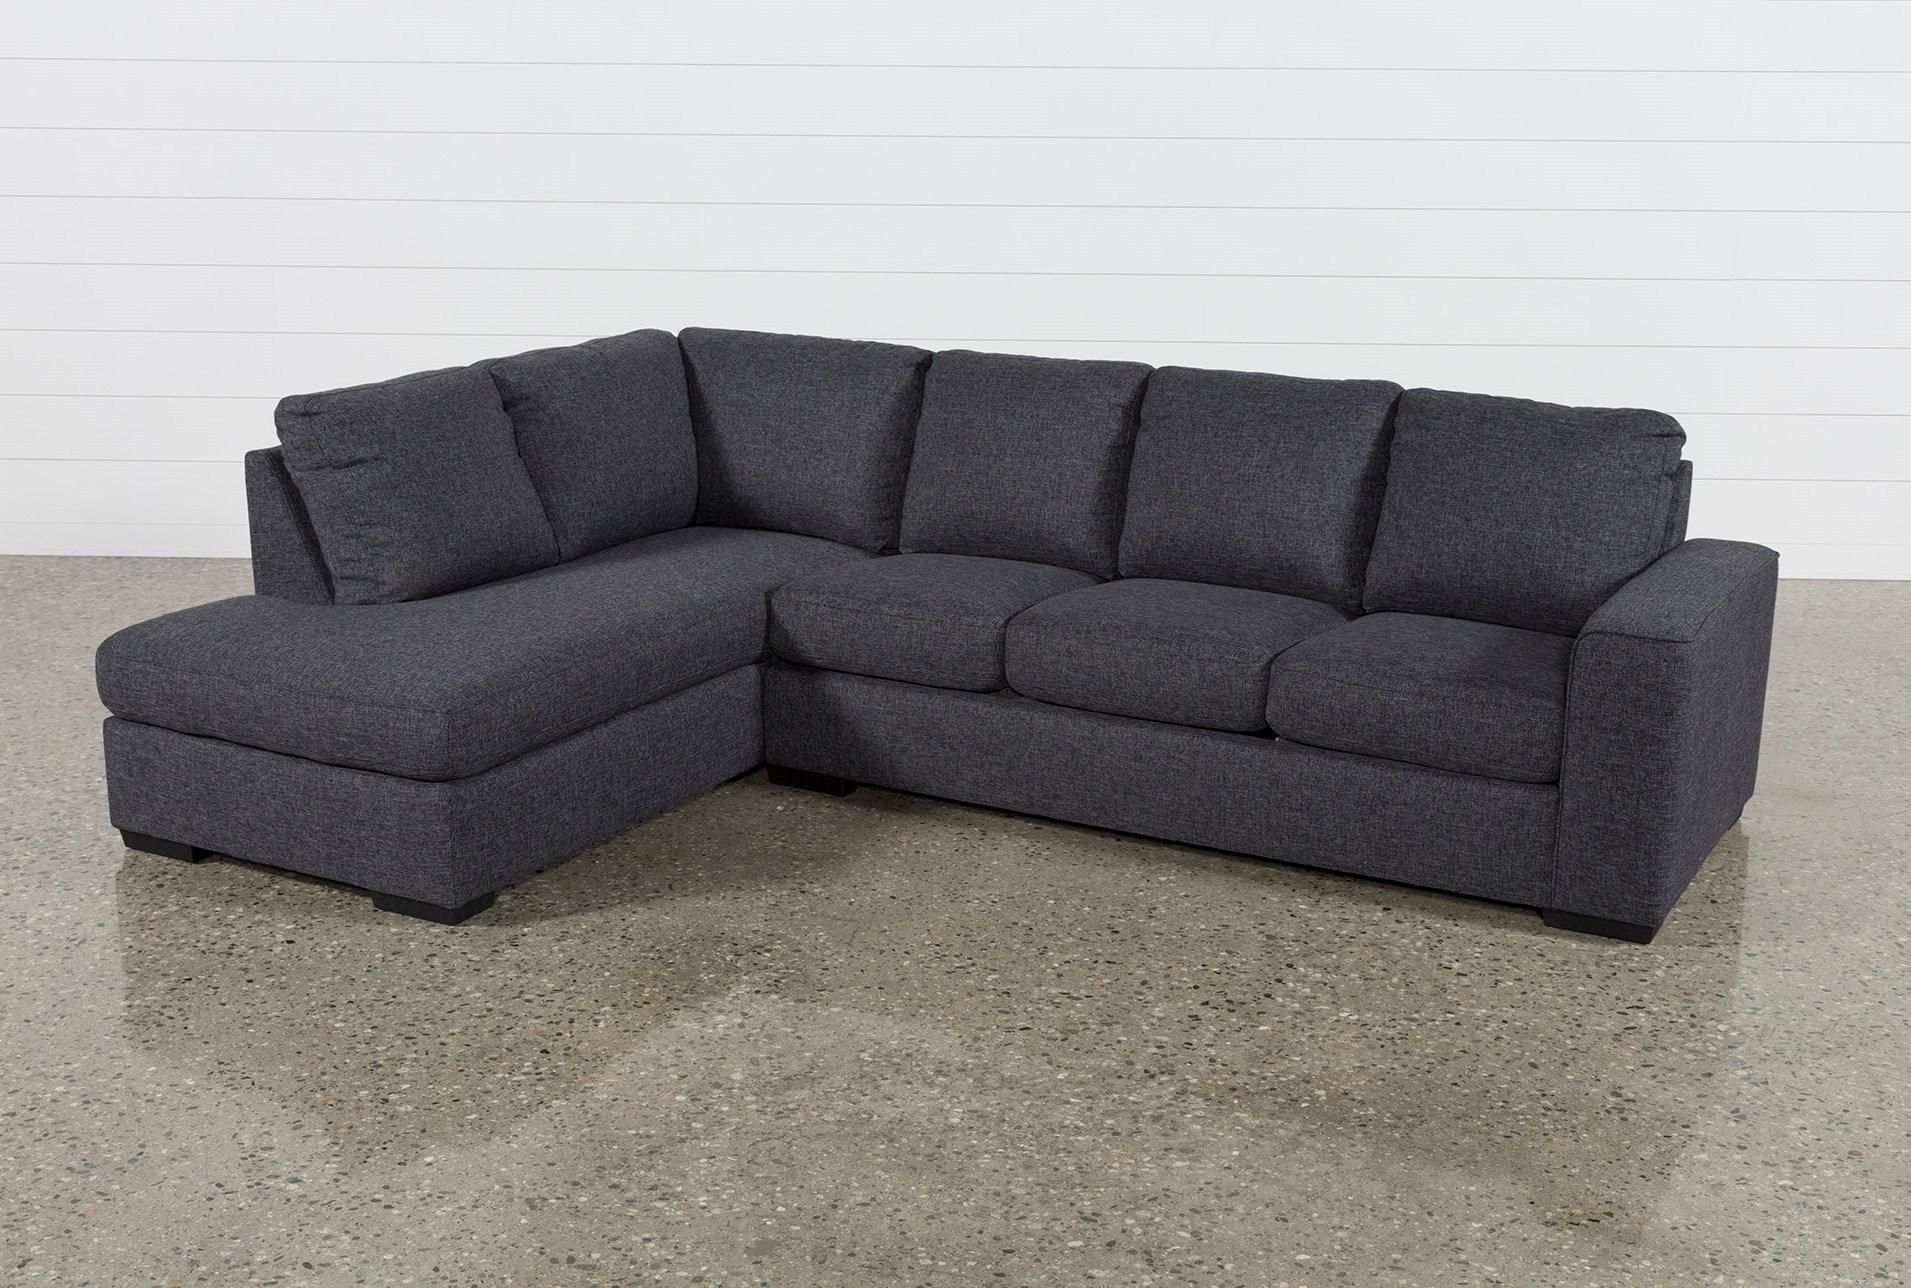 Lucy Dark Grey 2 Piece Sectional W/laf Chaise | Things I Like in Lucy Dark Grey 2 Piece Sectionals With Laf Chaise (Image 18 of 30)